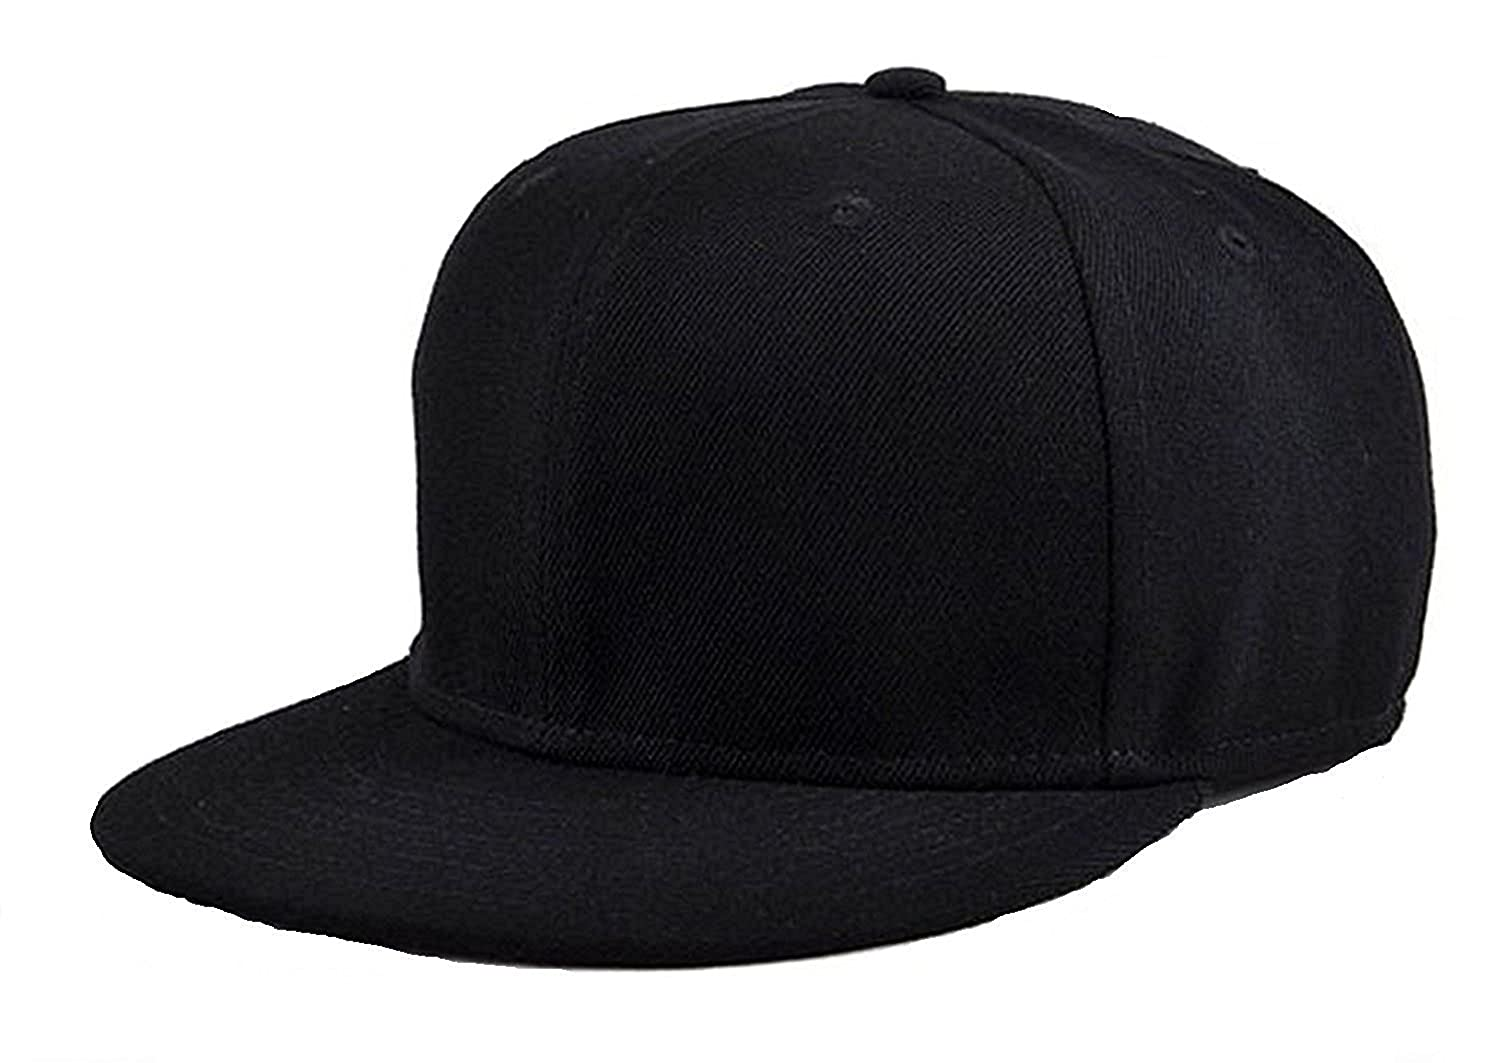 Drunken Men s Cotton Snapback Cap (Black Free Size)  Amazon.in  Clothing    Accessories 5e47cd163377